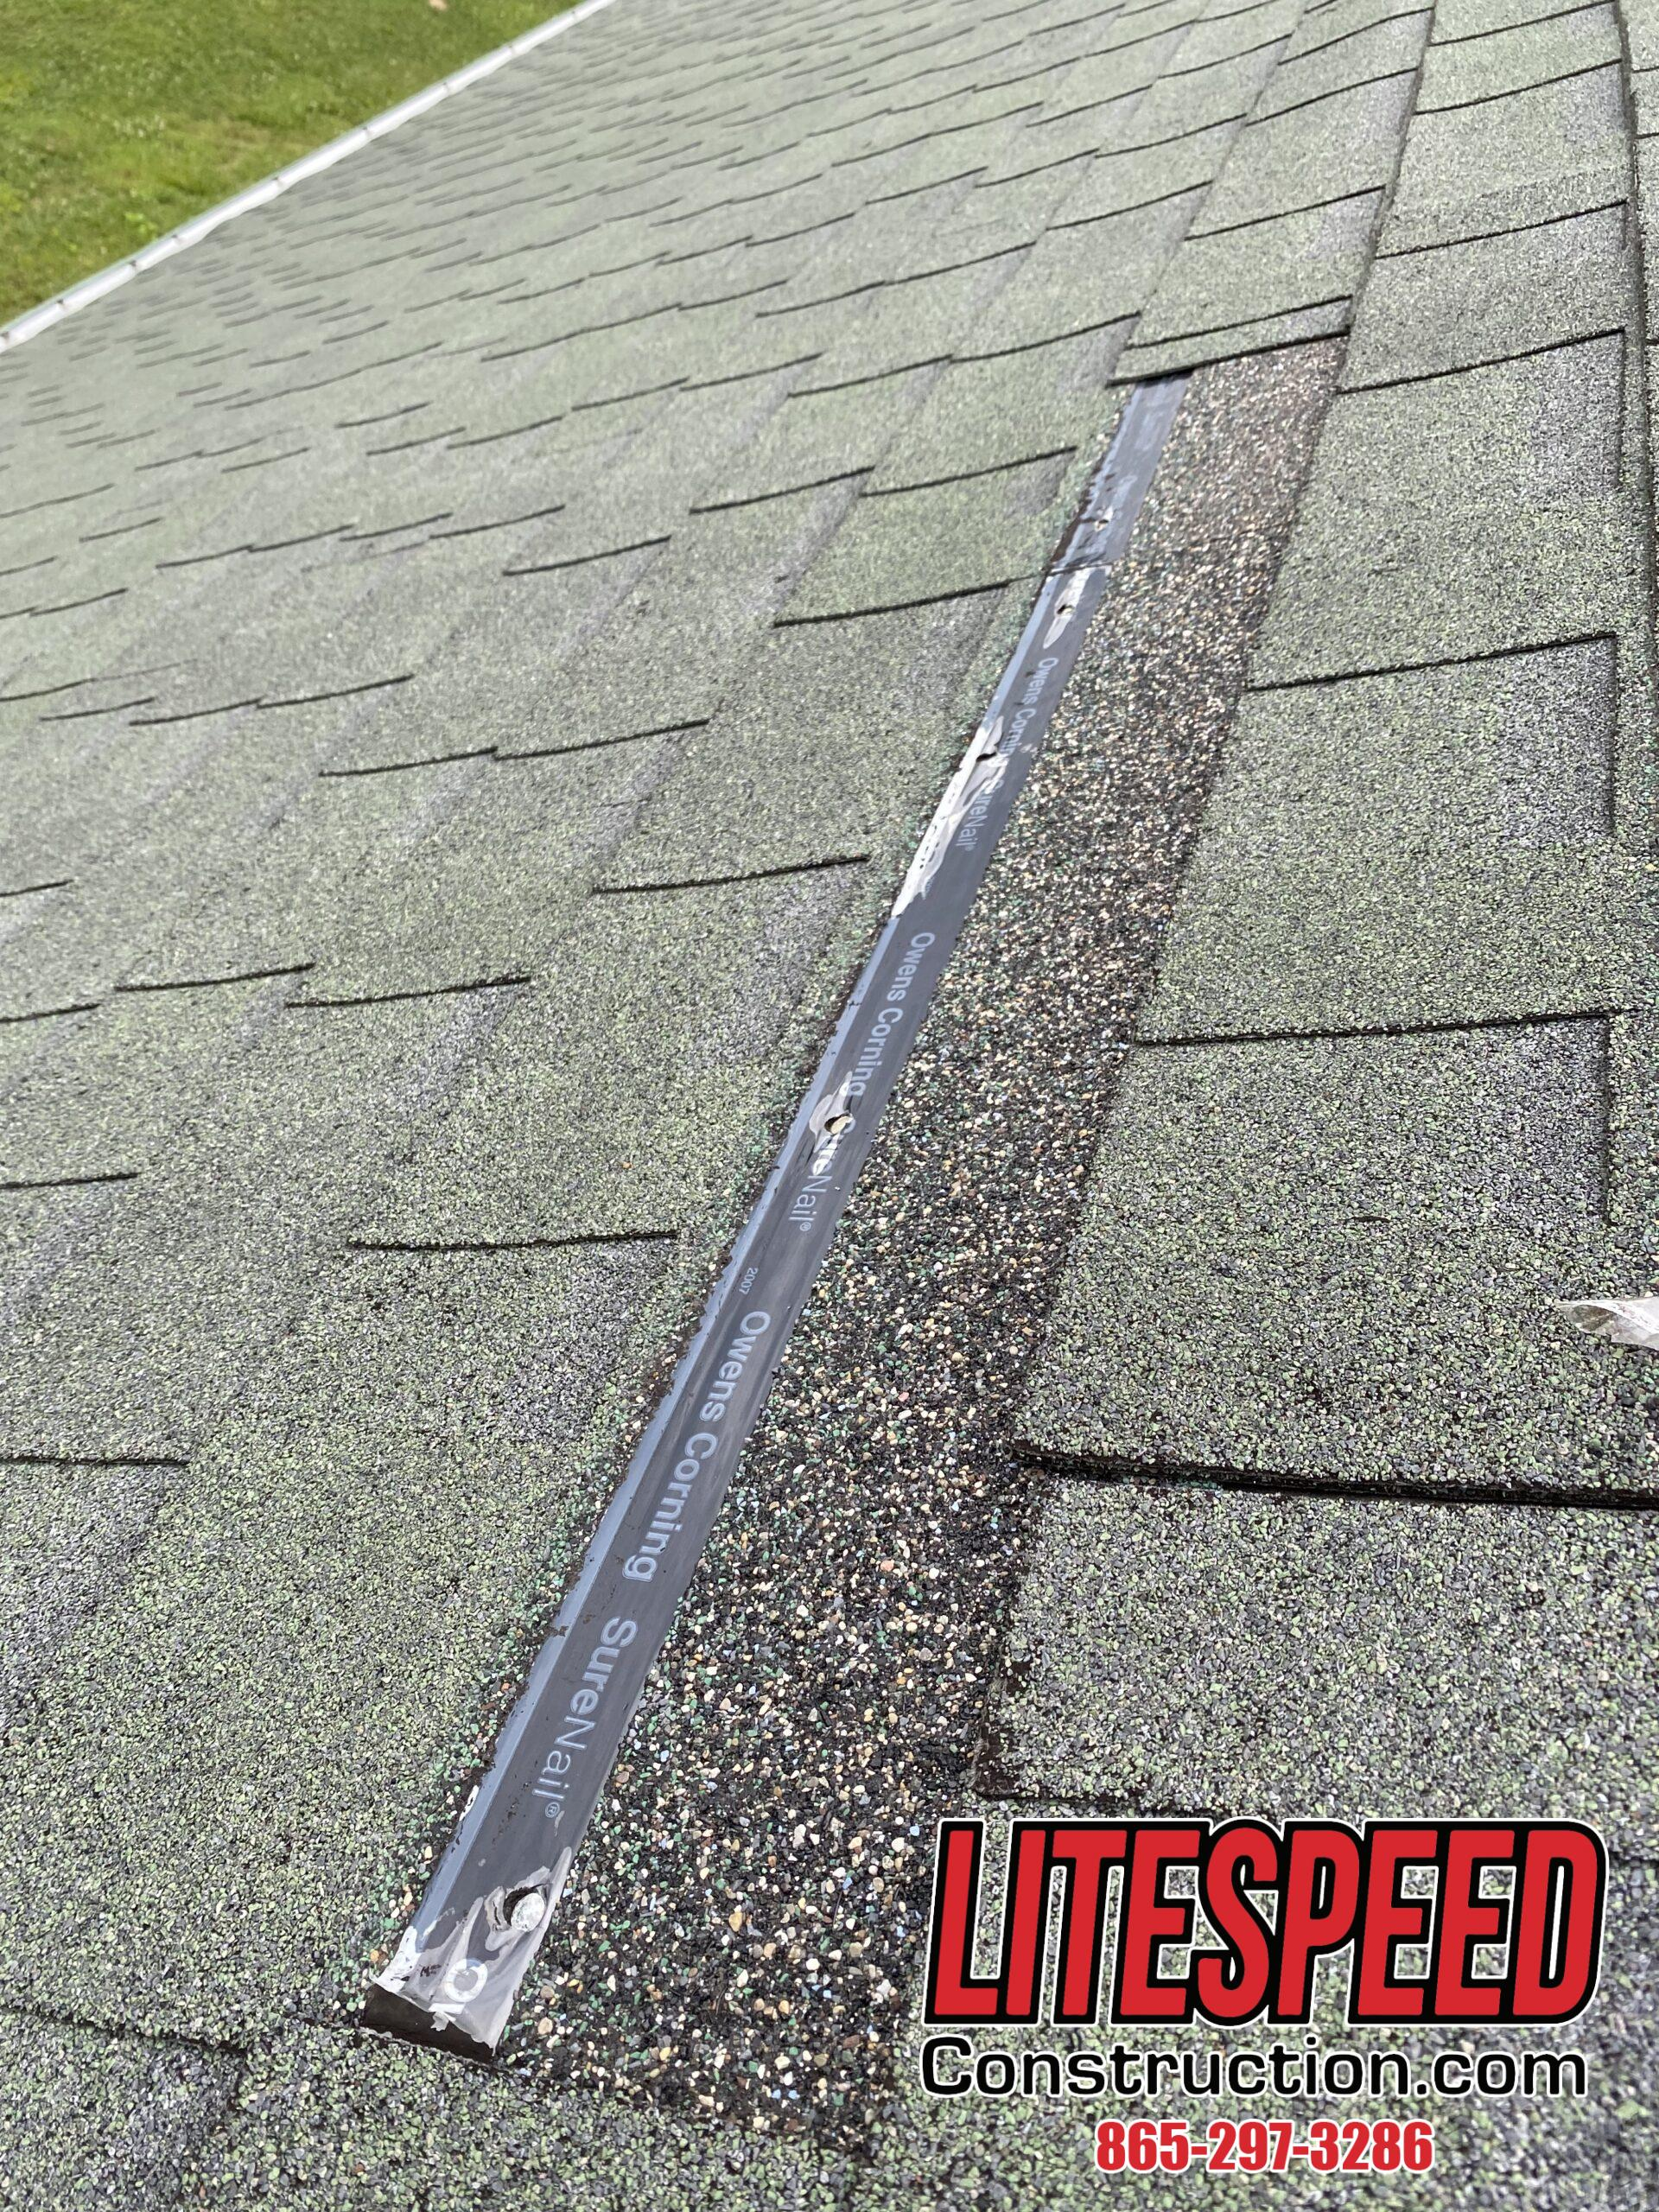 This is a picture of a green roof with missing shingles.